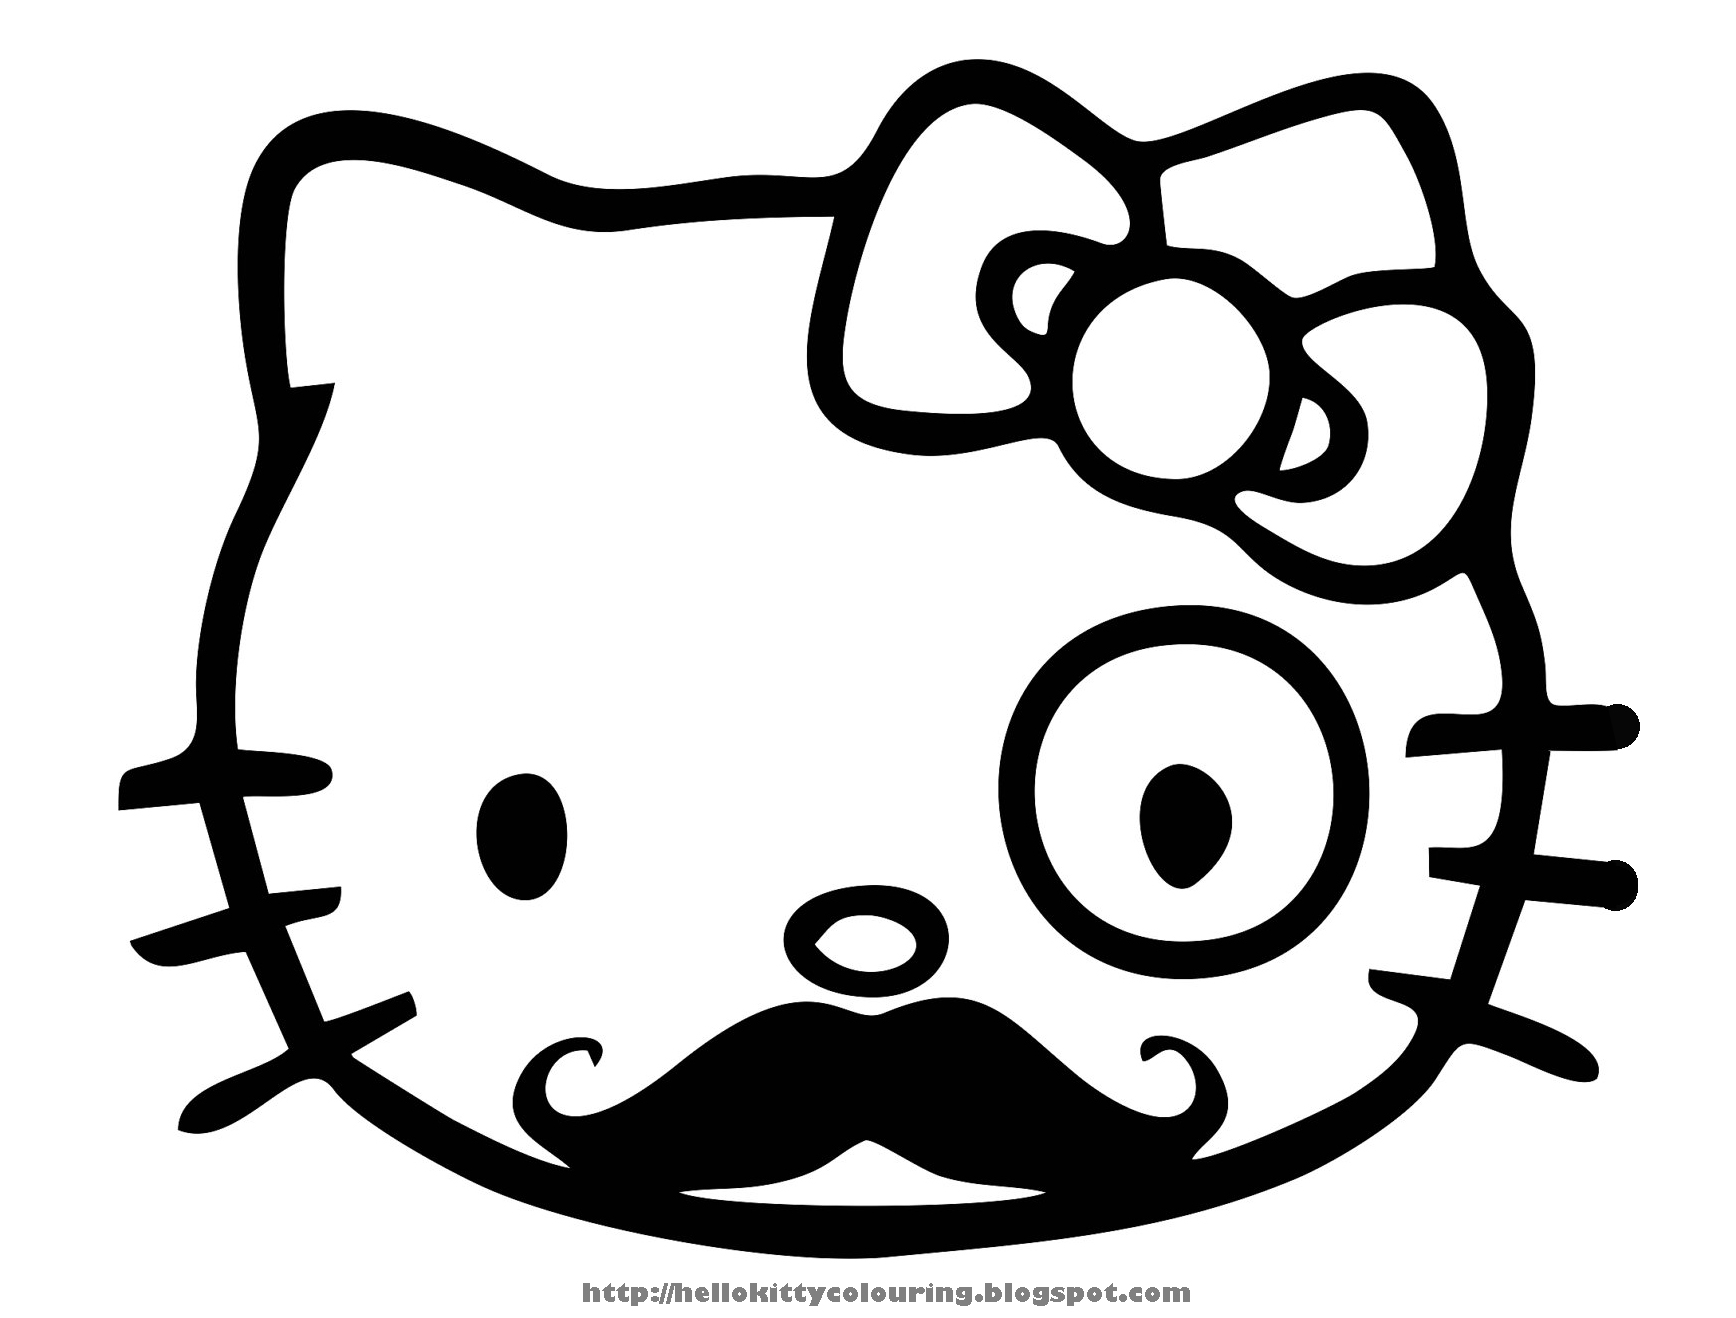 hello kitty coloring pages free printable large hello kitty coloring pages download and print for free pages hello printable free kitty coloring